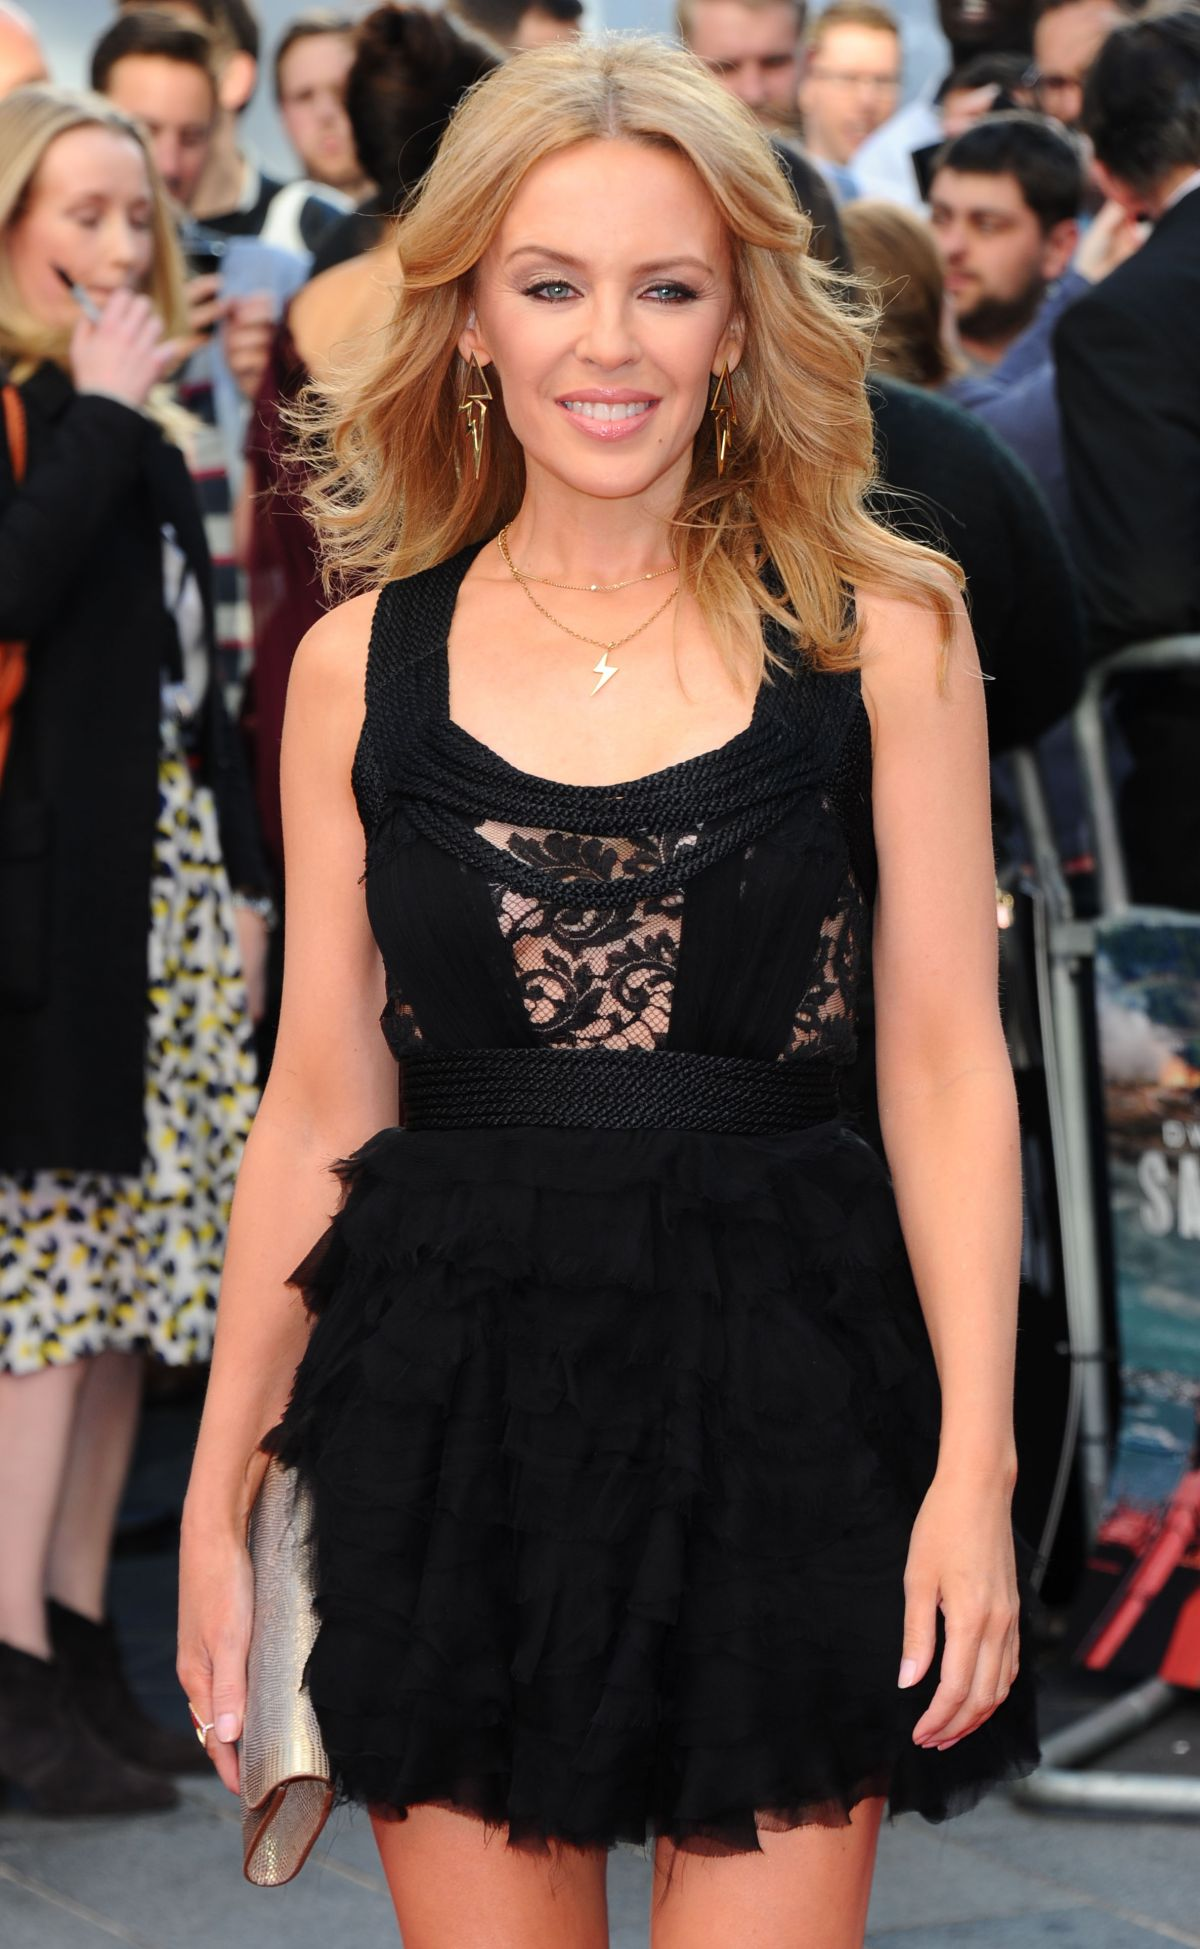 KYLIE MONOGUE at San Andreas Premiere in London